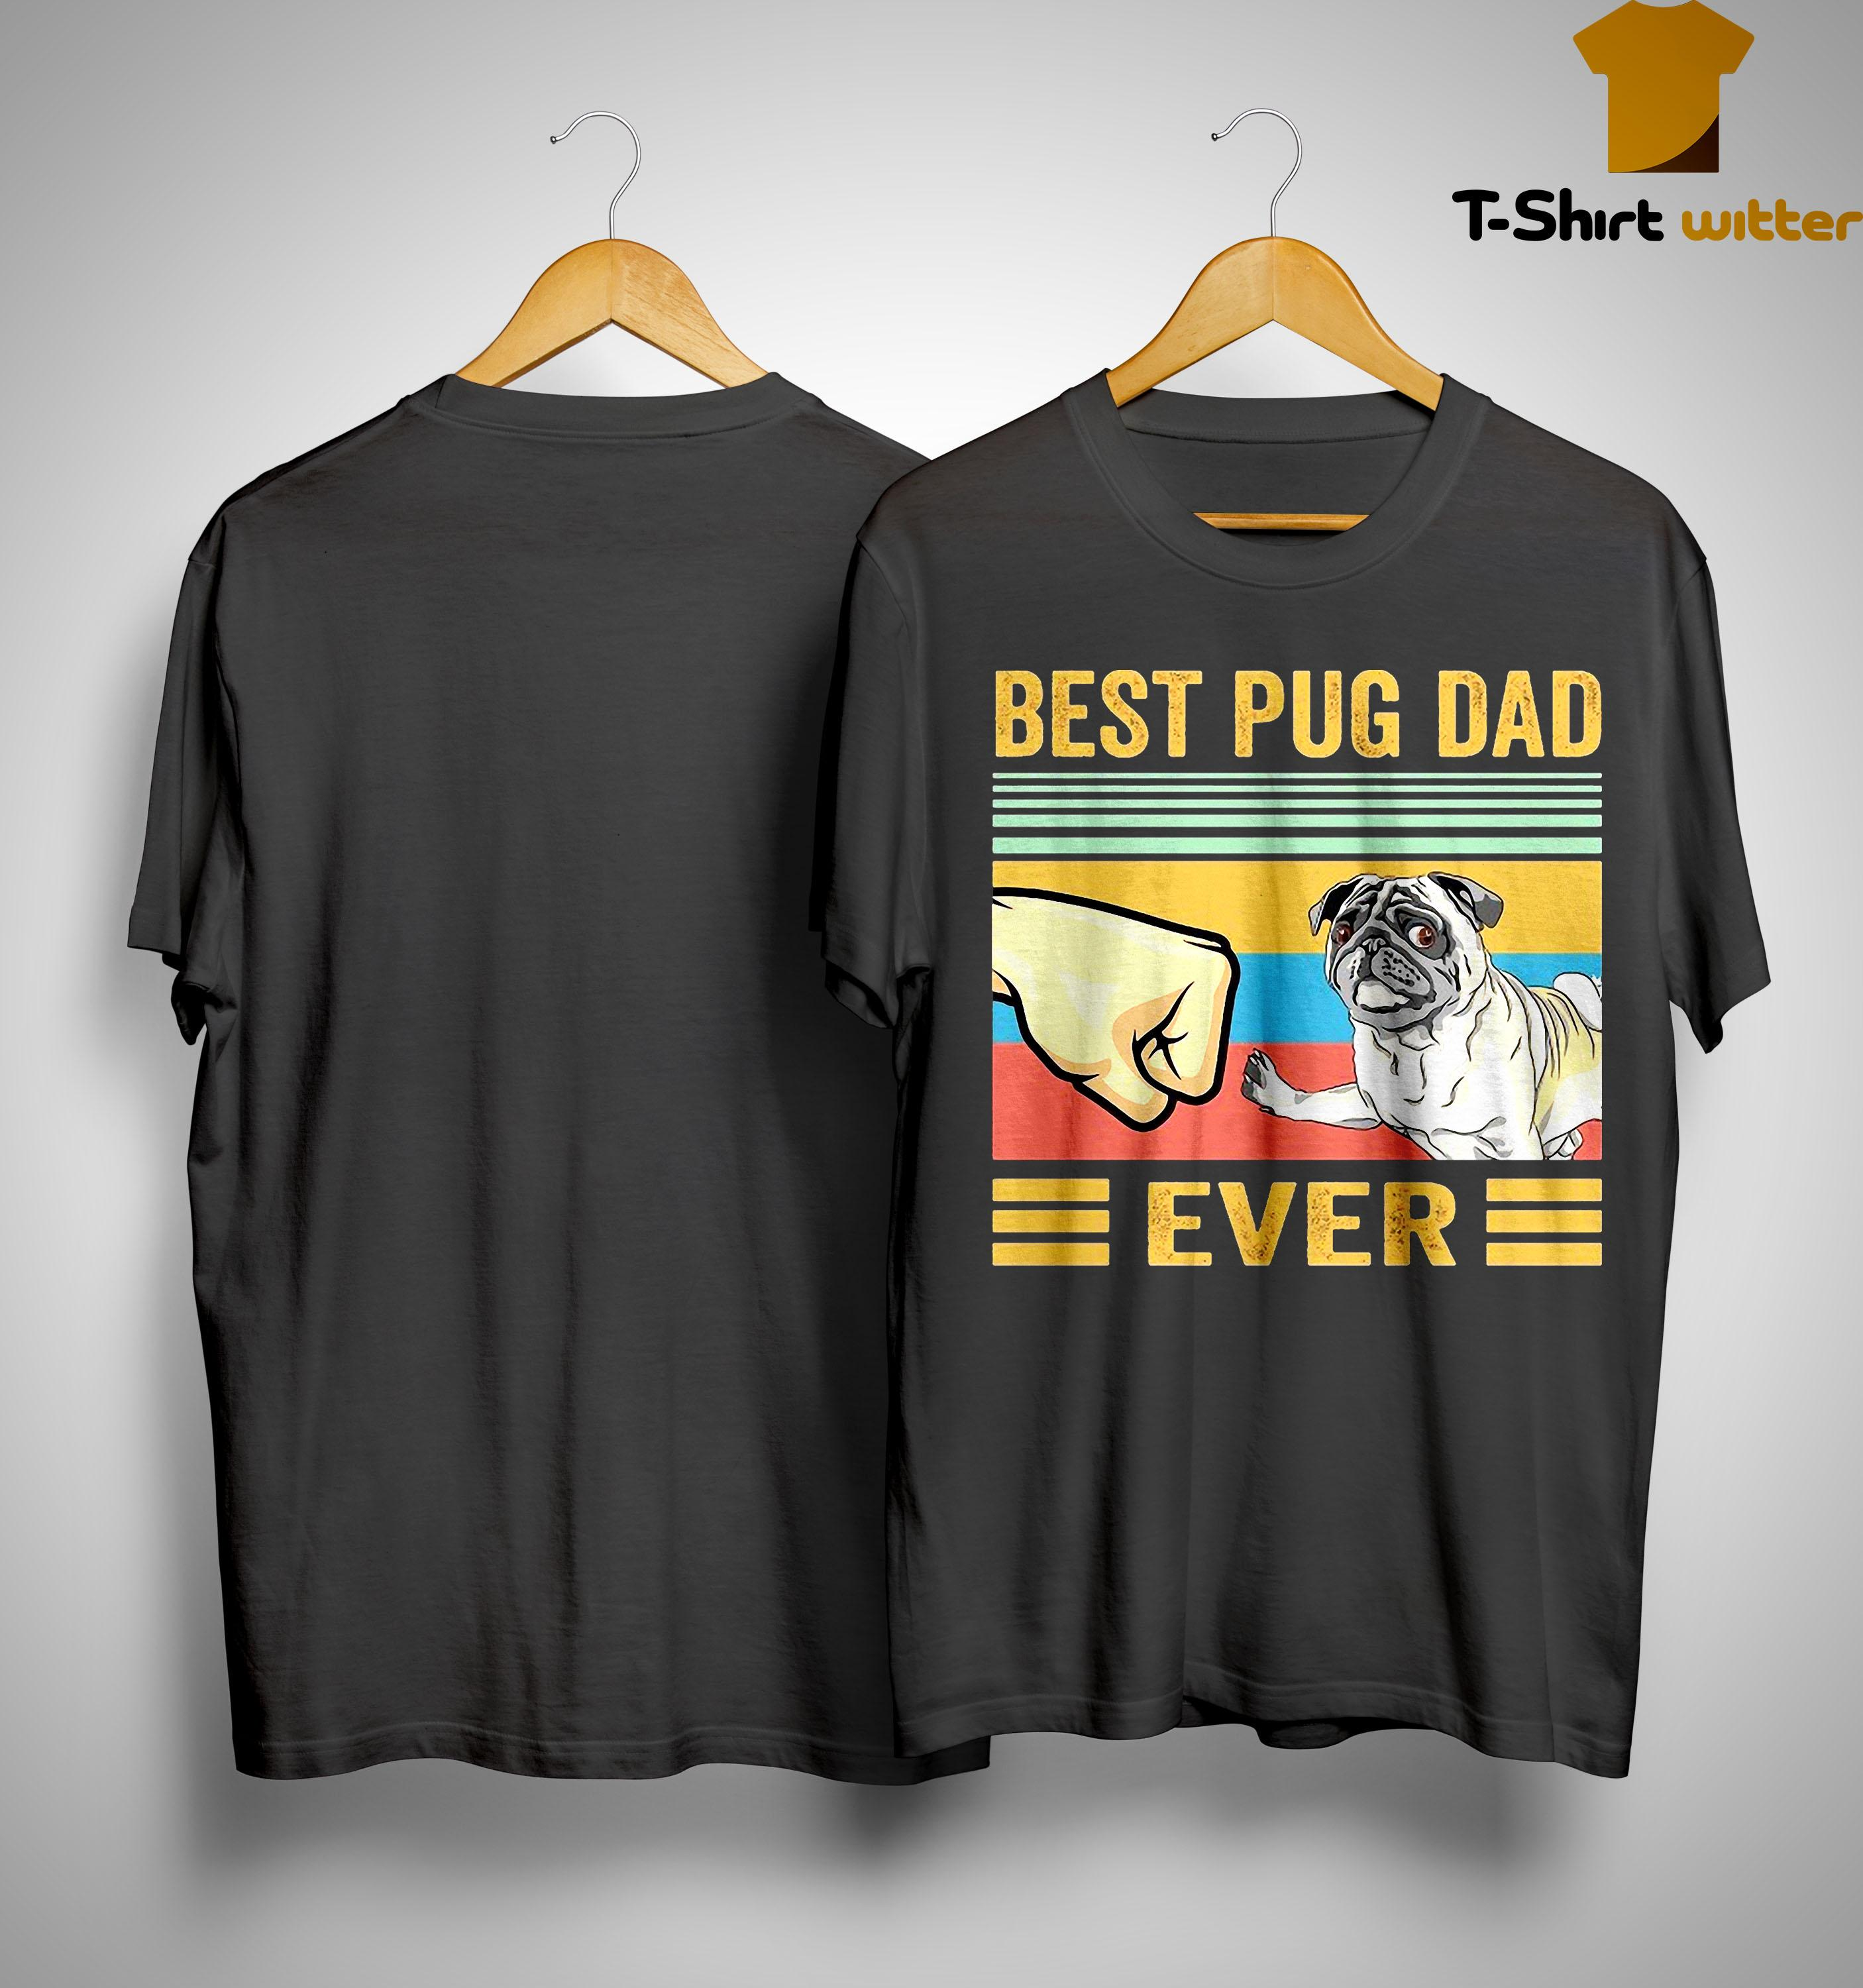 Best-Pug Dad-Ever Shirt Tshirt Vintage